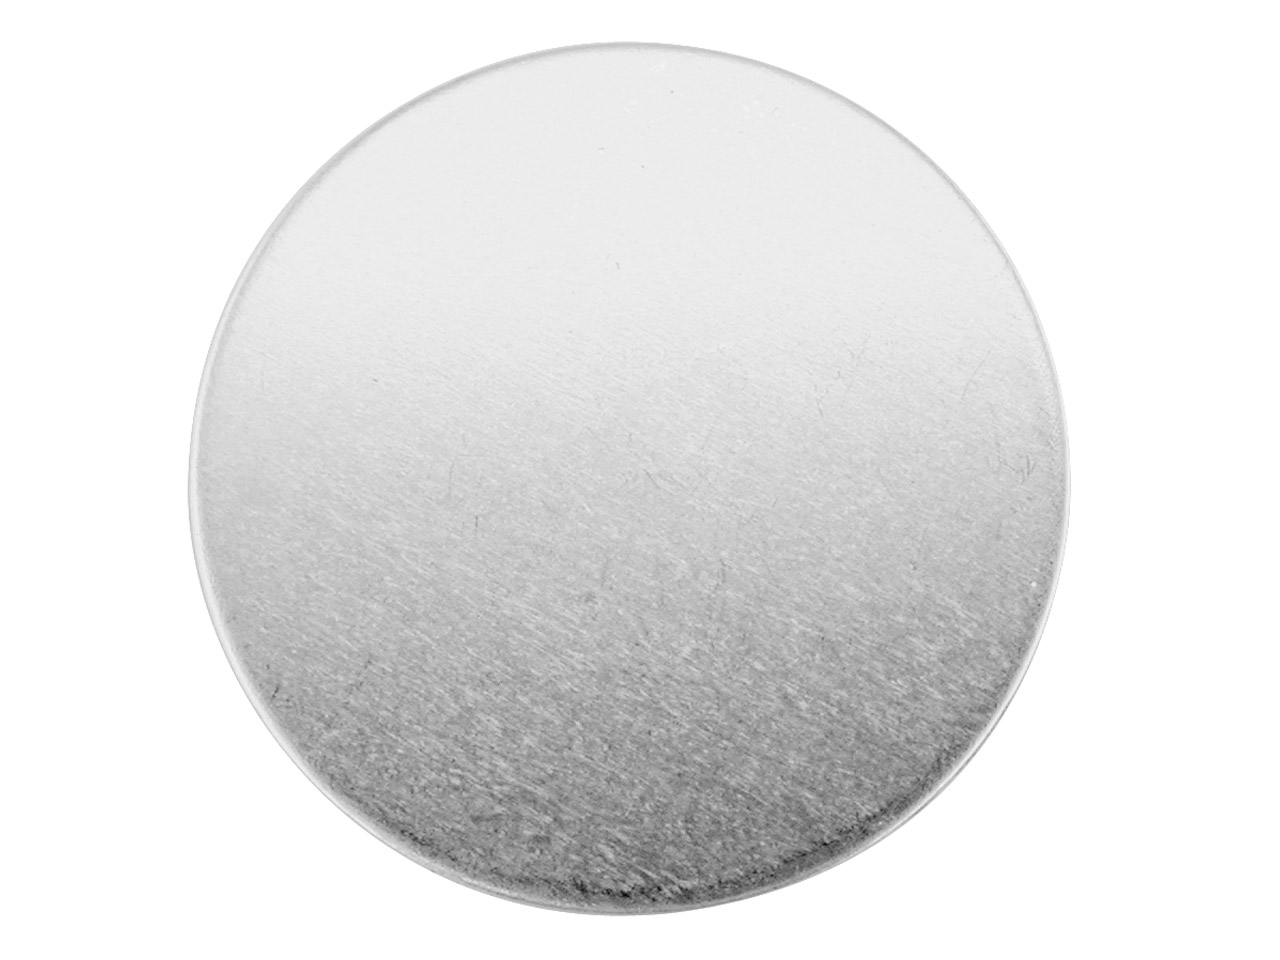 10mm x 0.5mm THICK ROUND STERLING SILVER FLAT DISC FOR JEWELLERY MAKING